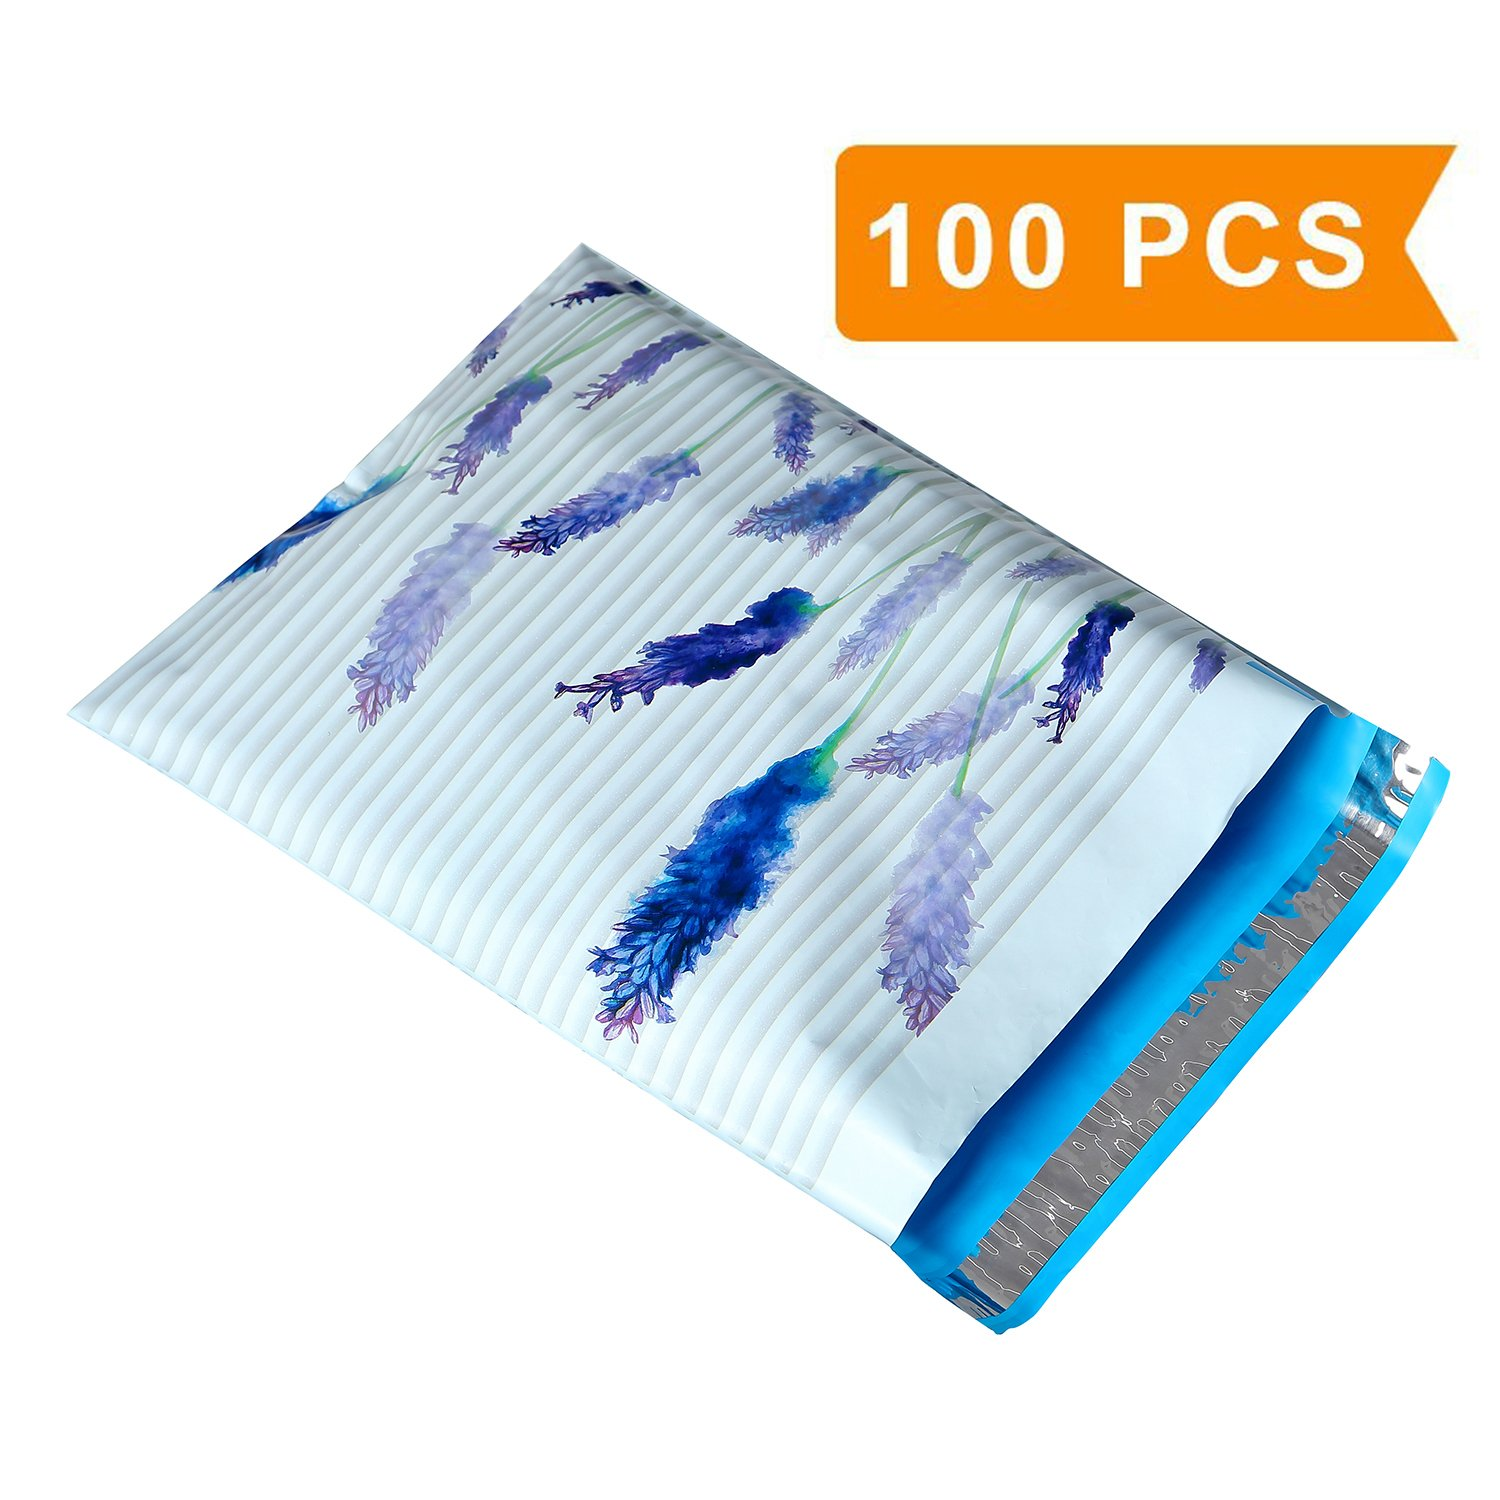 10x13 Purple Lavender Designer Poly Mailers Shipping Envelopes Boutique Custom Bags with Self-Adhesive, Waterproof and Tear - proof Postal Bags (100 PCS)